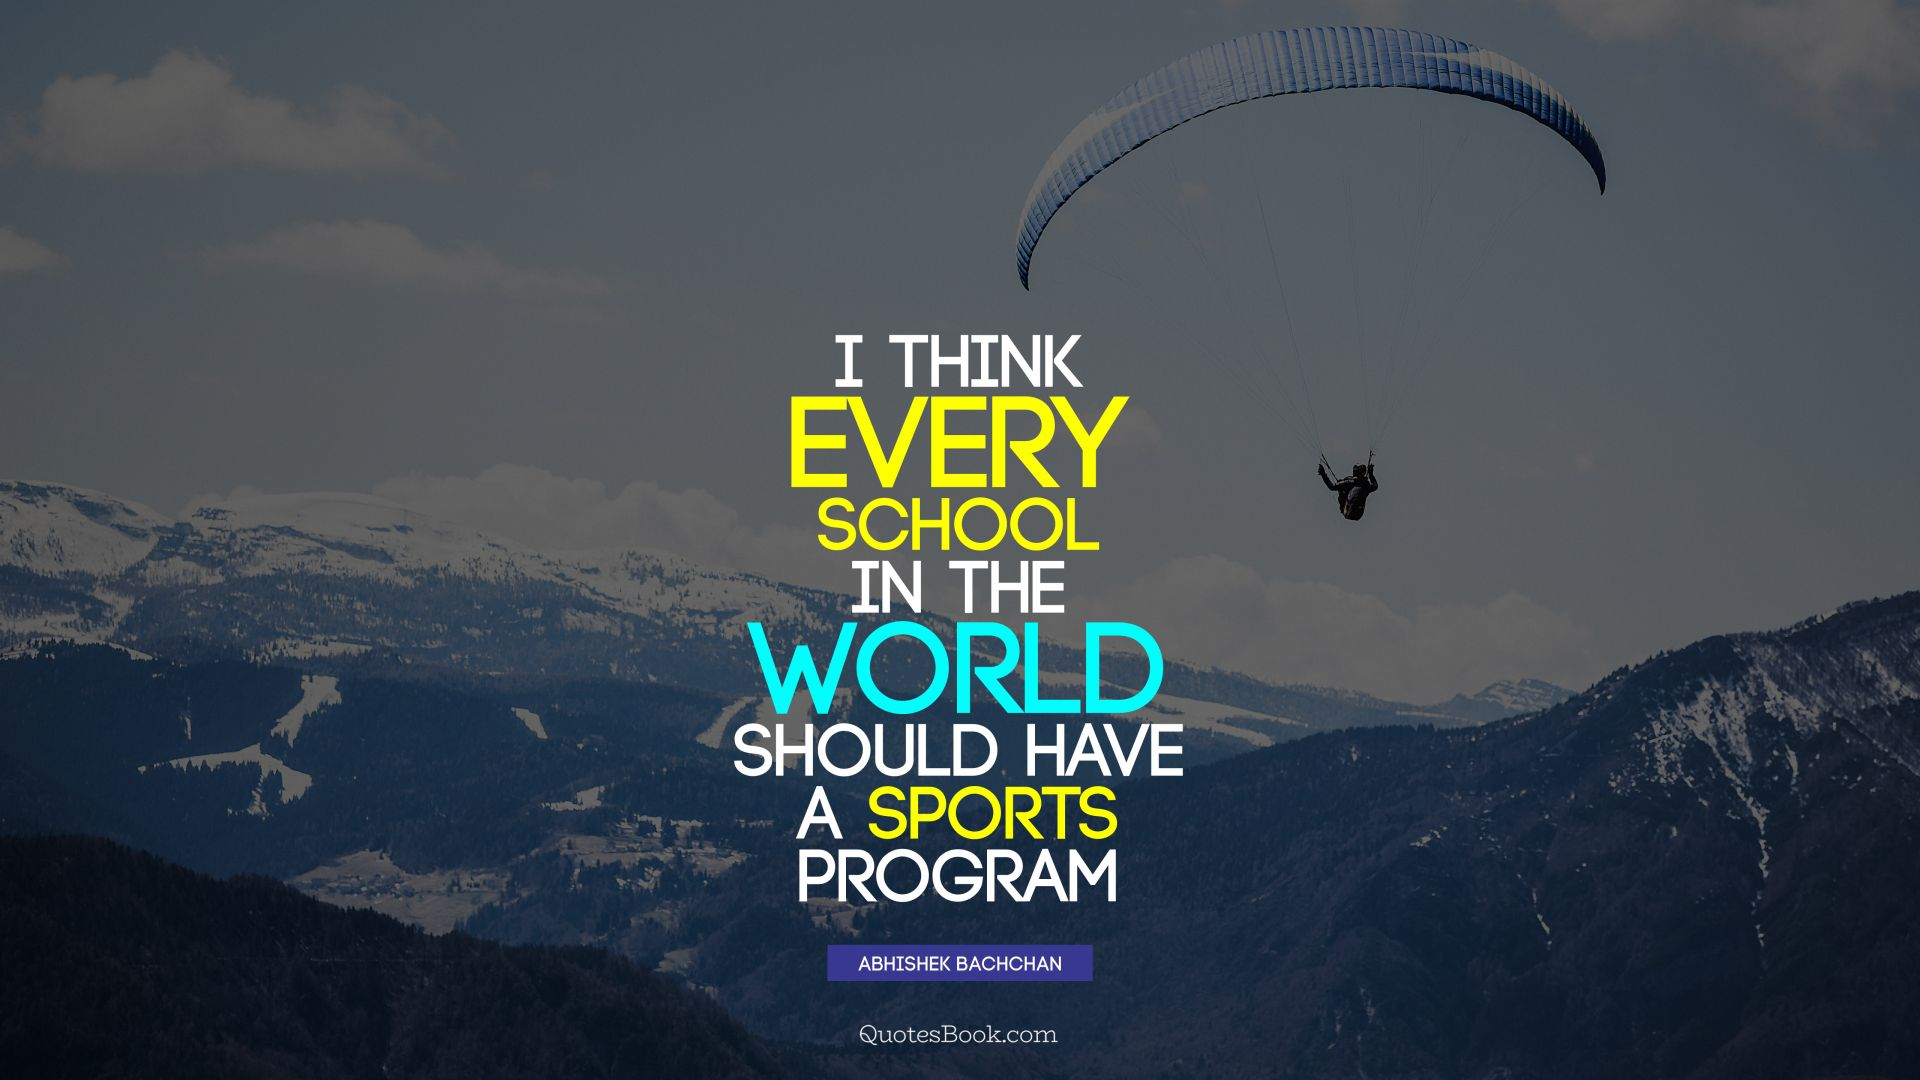 I think every school in the world should have a sports program. - Quote by Abhishek Bachchan